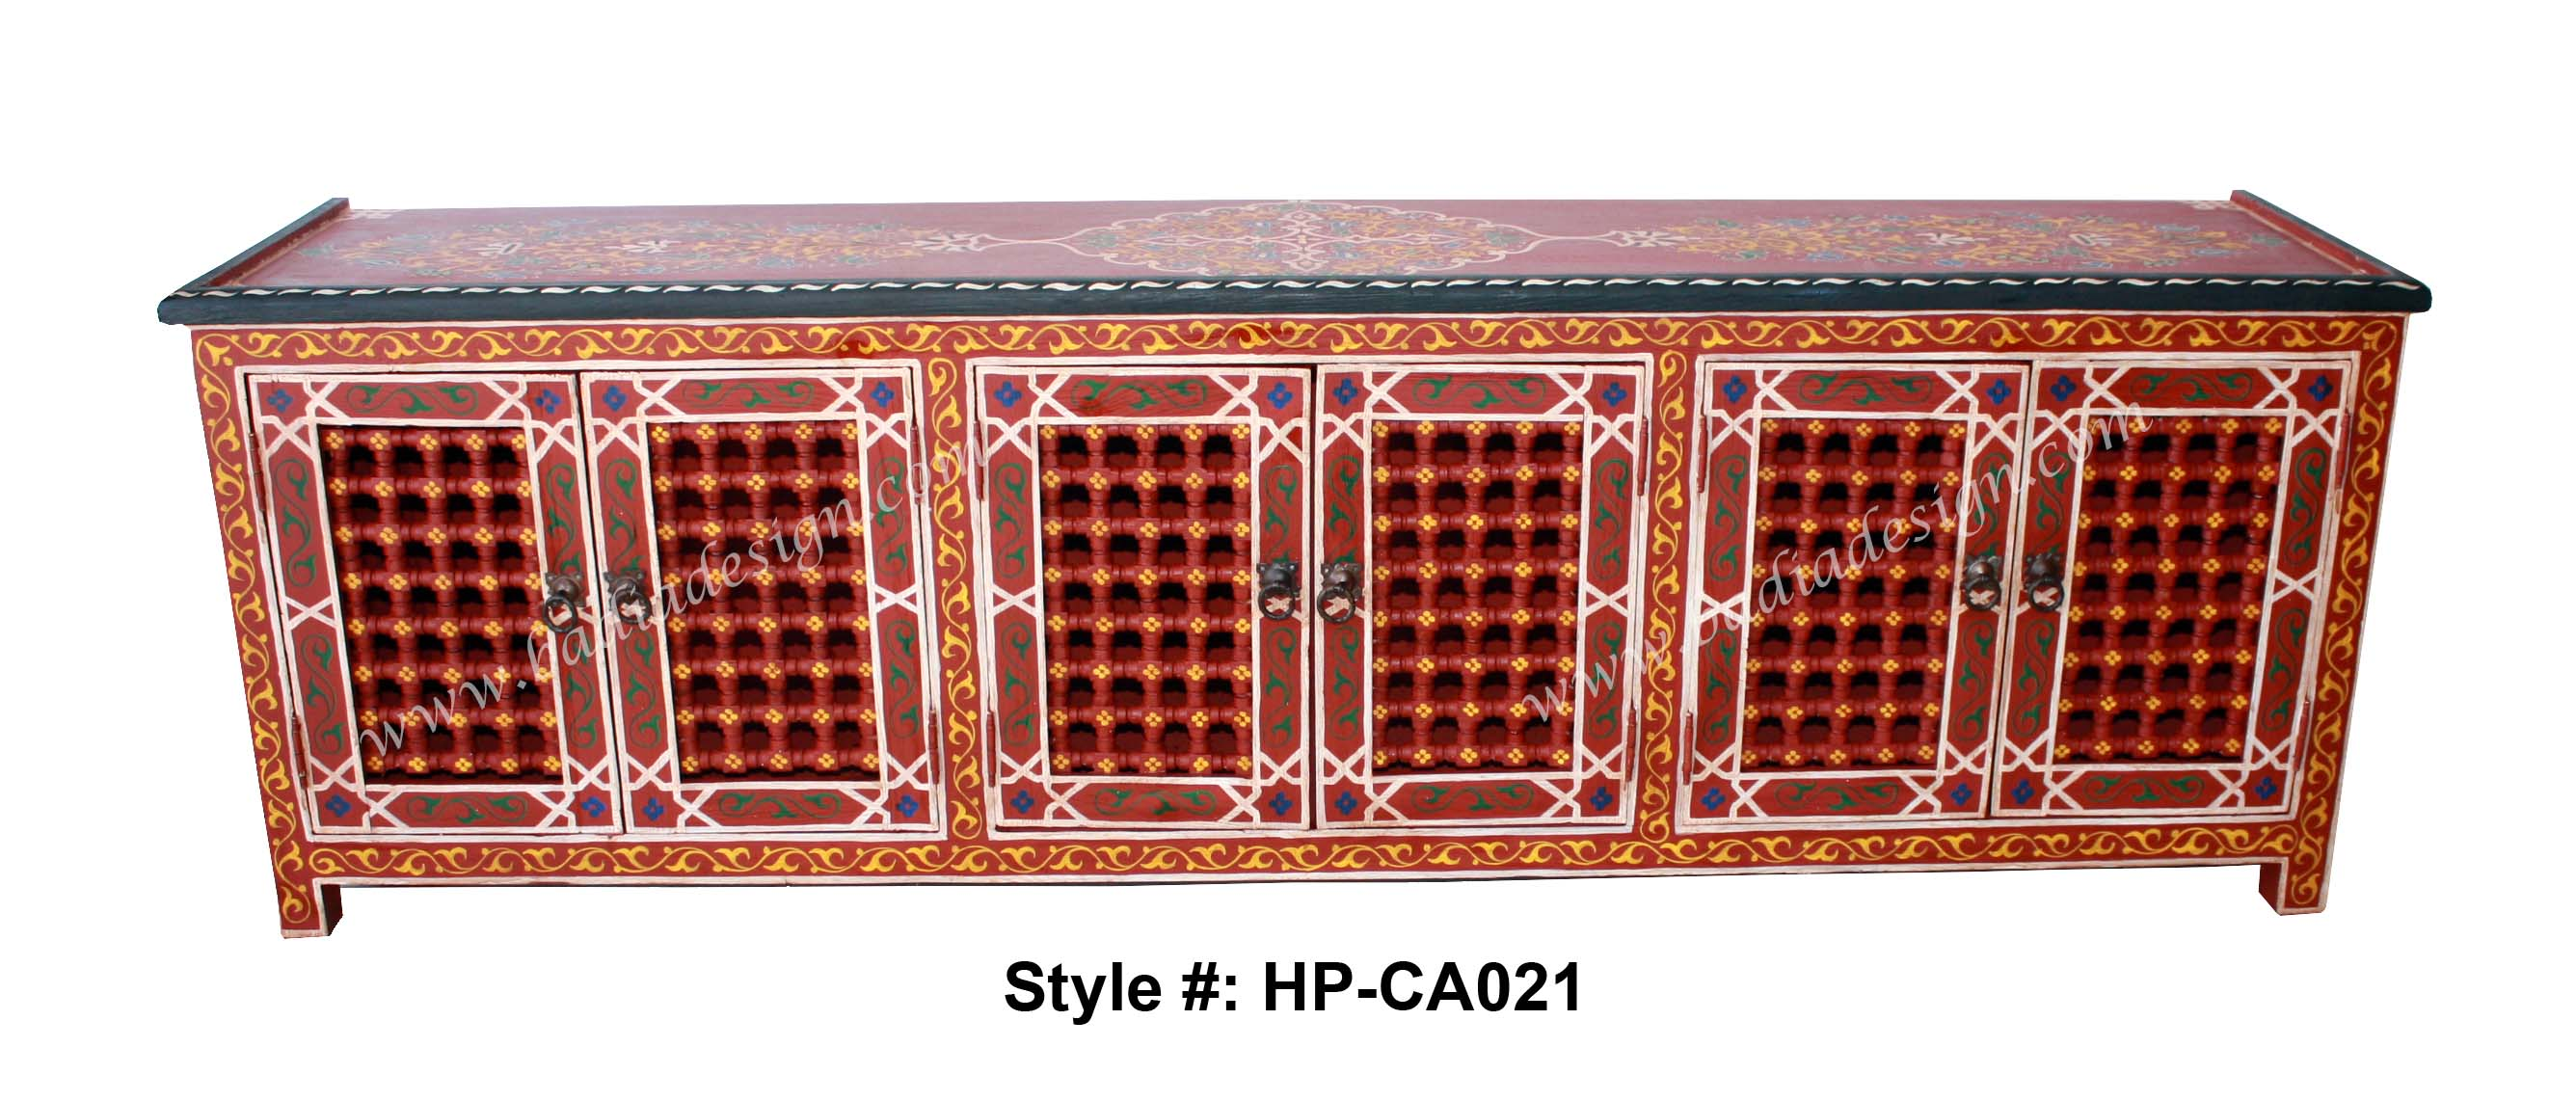 Moroccan Hand Painted Cabinet, Hand Painted Cabinet, Moroccan Hand Painted  Wooden Cabinet, Moroccan